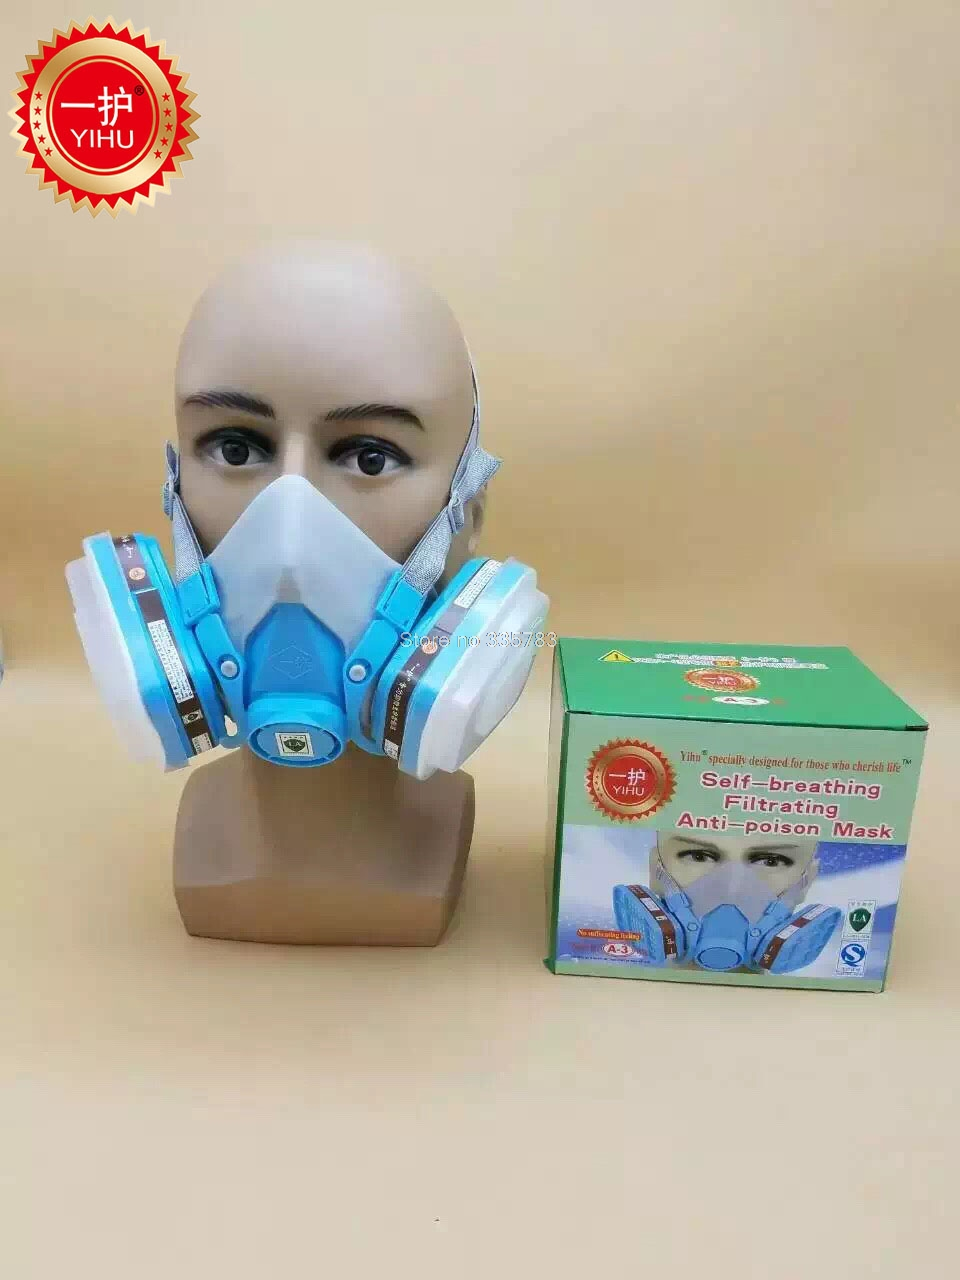 YIHU respirator gas mask Silica gel green protective mask pesticides paint industrial safety respirator face mask yihu gas masks protective mask respirator against painting dust storms formaldehyde pesticides spraying mask